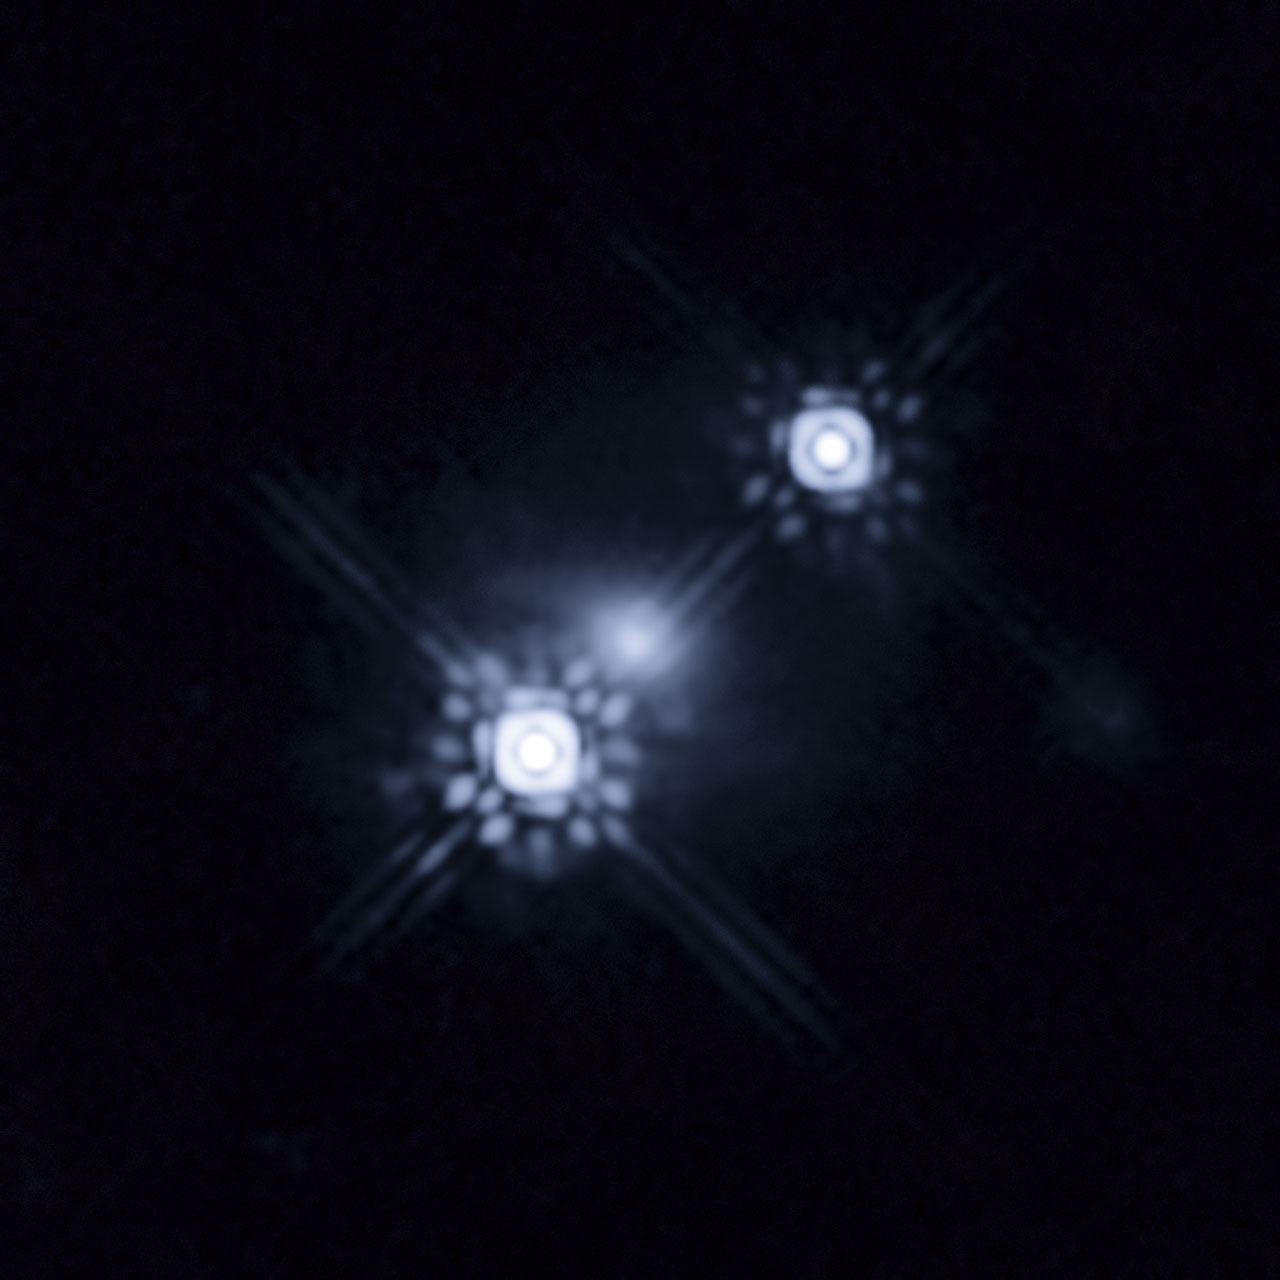 Gravitationally lensed quasar HE 1104-1805